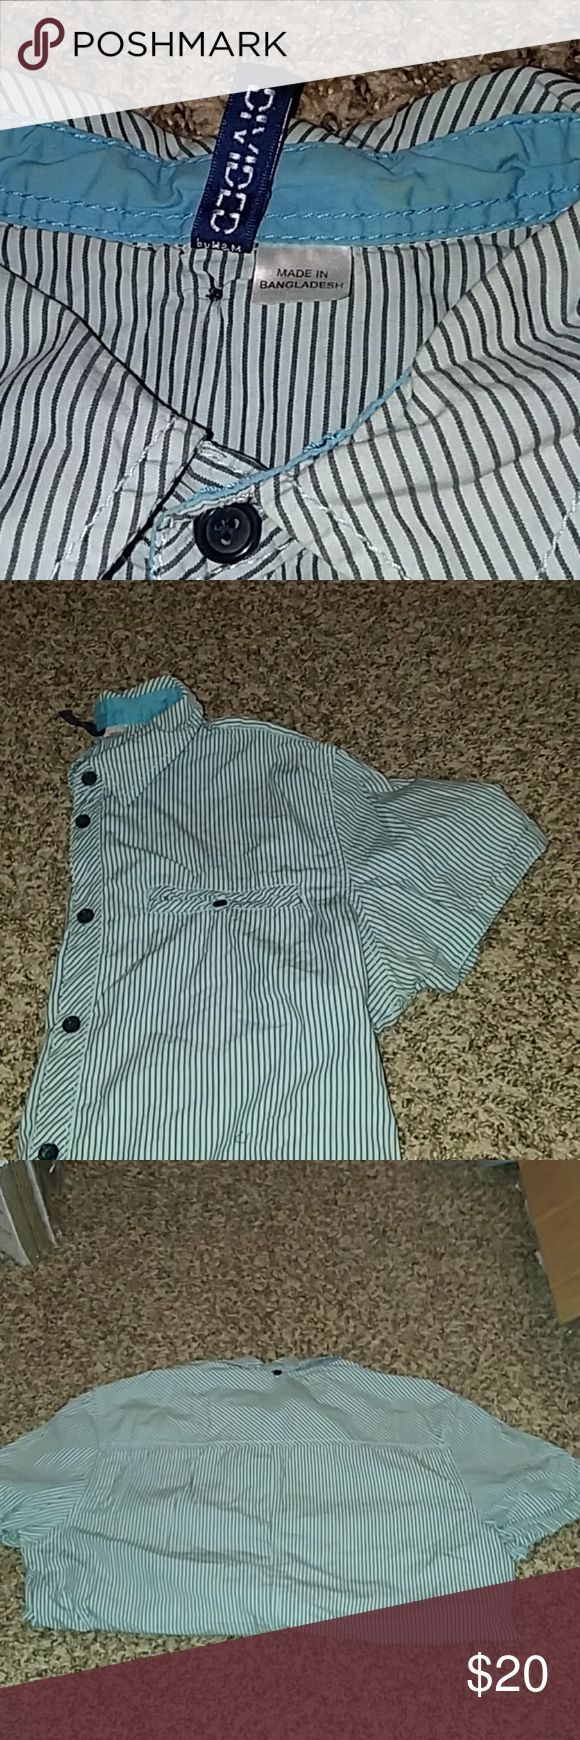 Sz S Divided by H&M casual button down shirt Small Divided by H&M light blue and charcoal gray striped shirt. Button down, single front pocket, casual collared shirt.   Gently used, 100% cotton.   Offers and questions are encouraged! Divided Shirts Casual Button Down Shirts